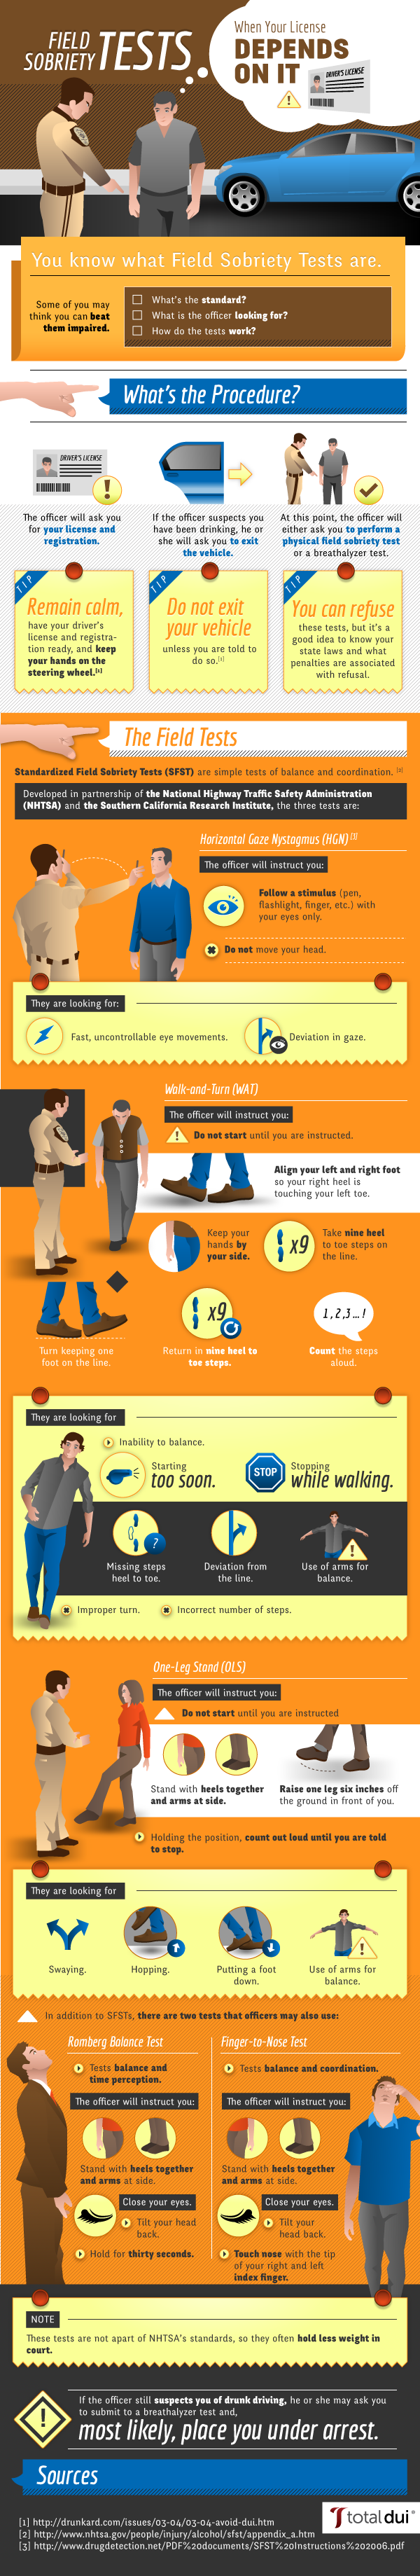 Field Sobriety Tests[INFOGRAPHIC]